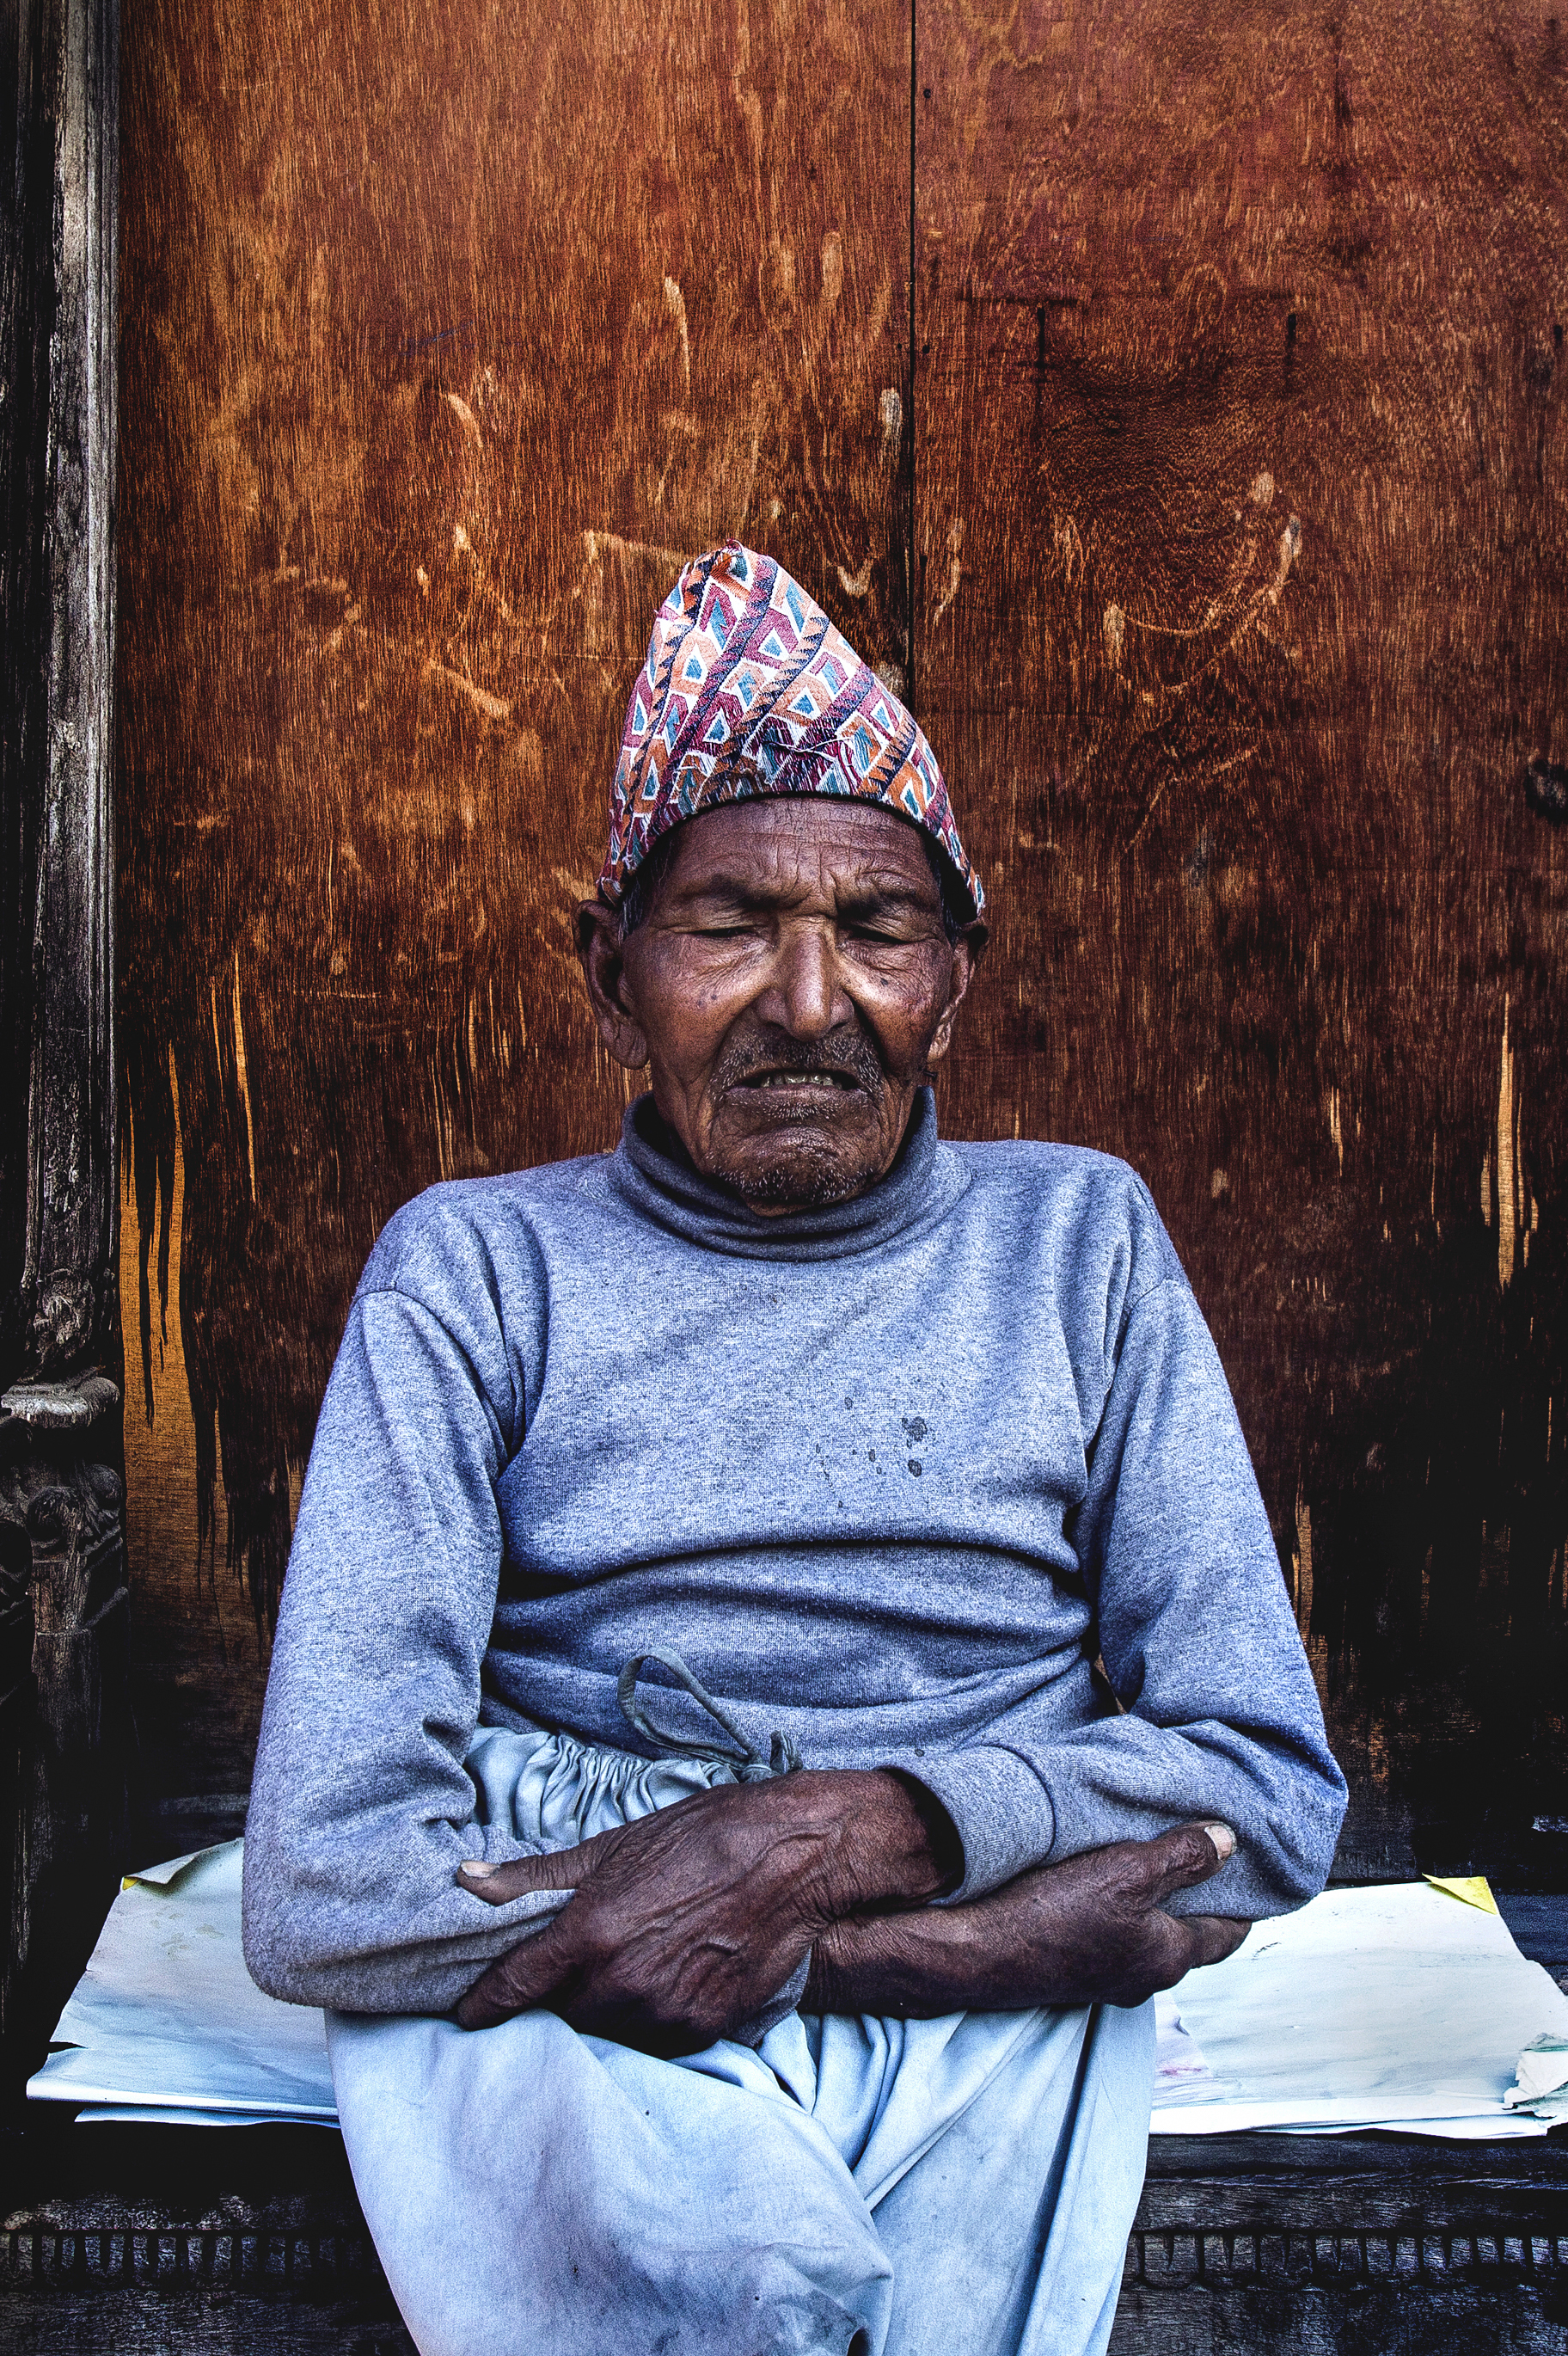 A blind man from Briddhashram home for the elderly, situated next to Pashupatinath, Kathmandu, Nepal.